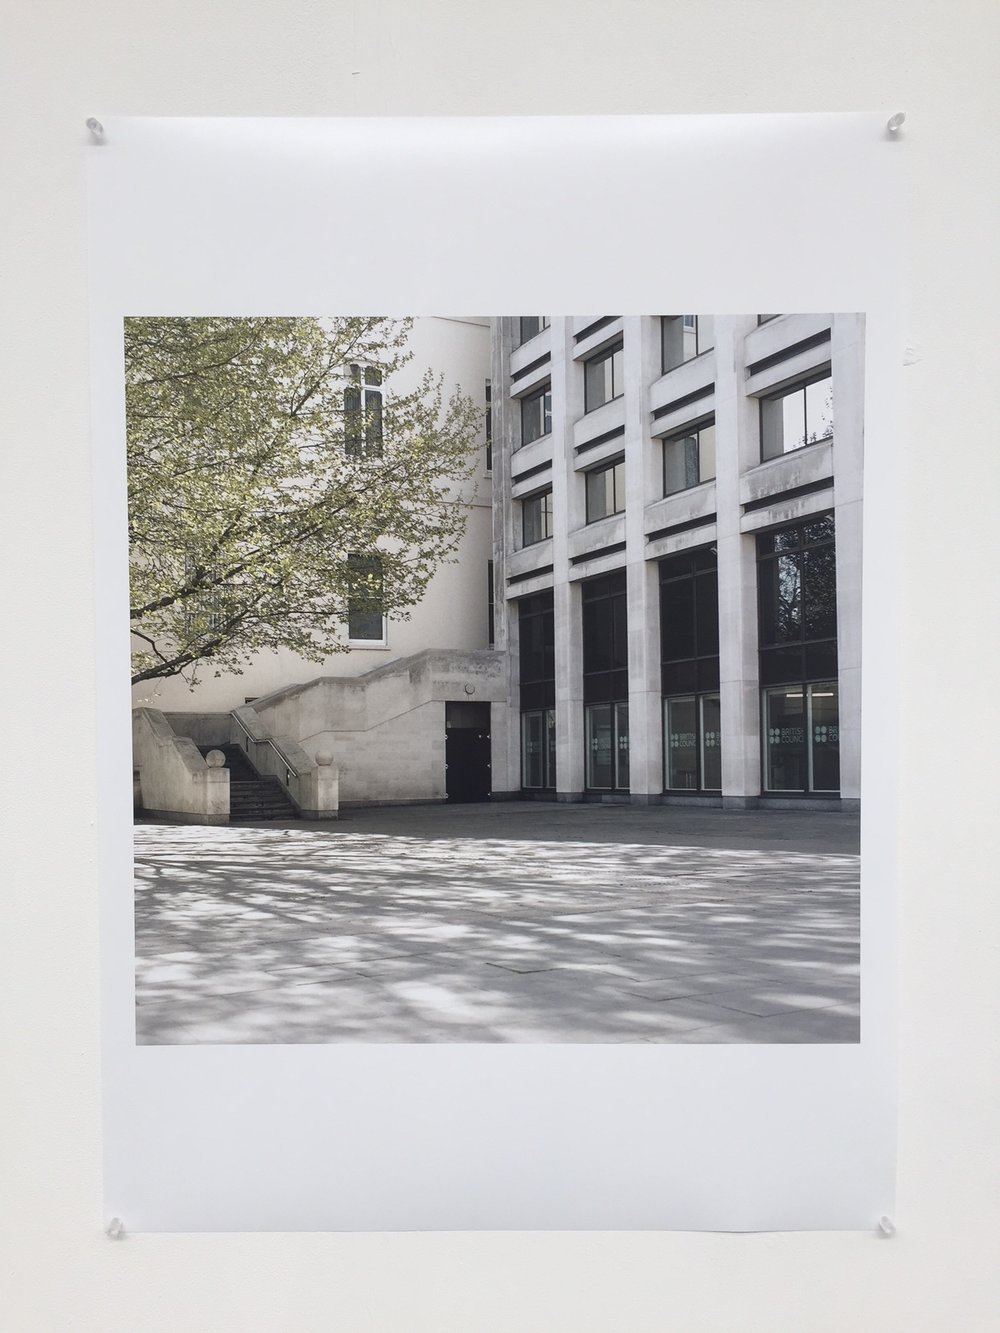 Original A1 print exhibited at The Old Truman Brewery.£499 - Item Code: EP7